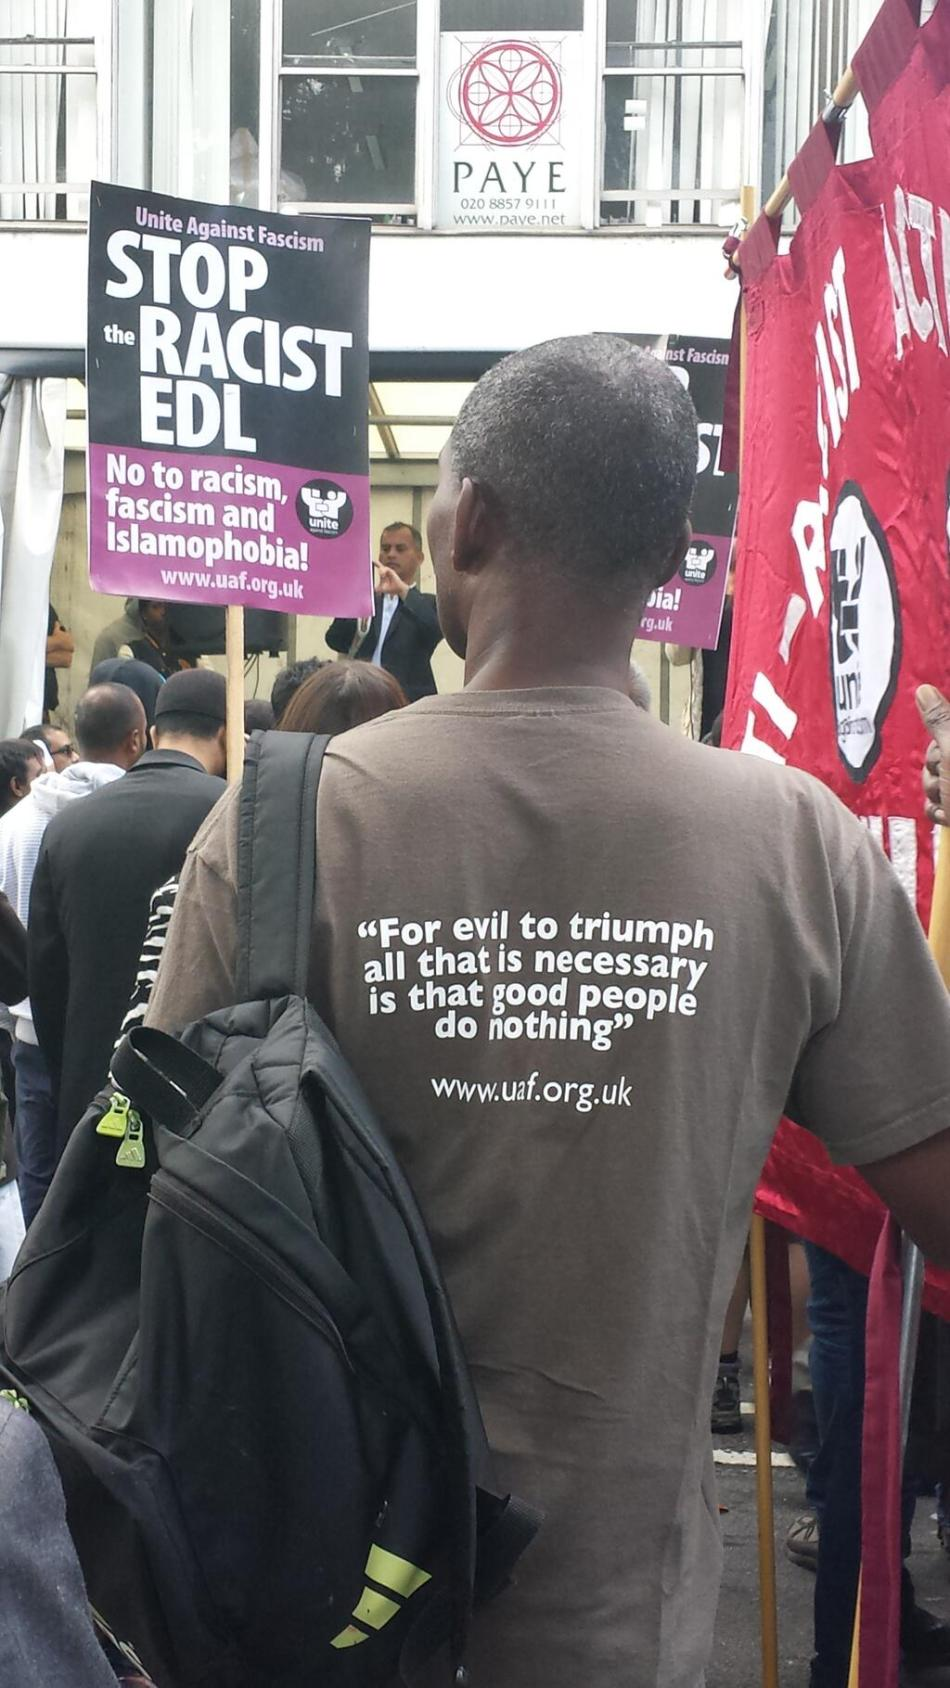 Fascist Group EDL Diminished by Tower Hamlets in Solidarity